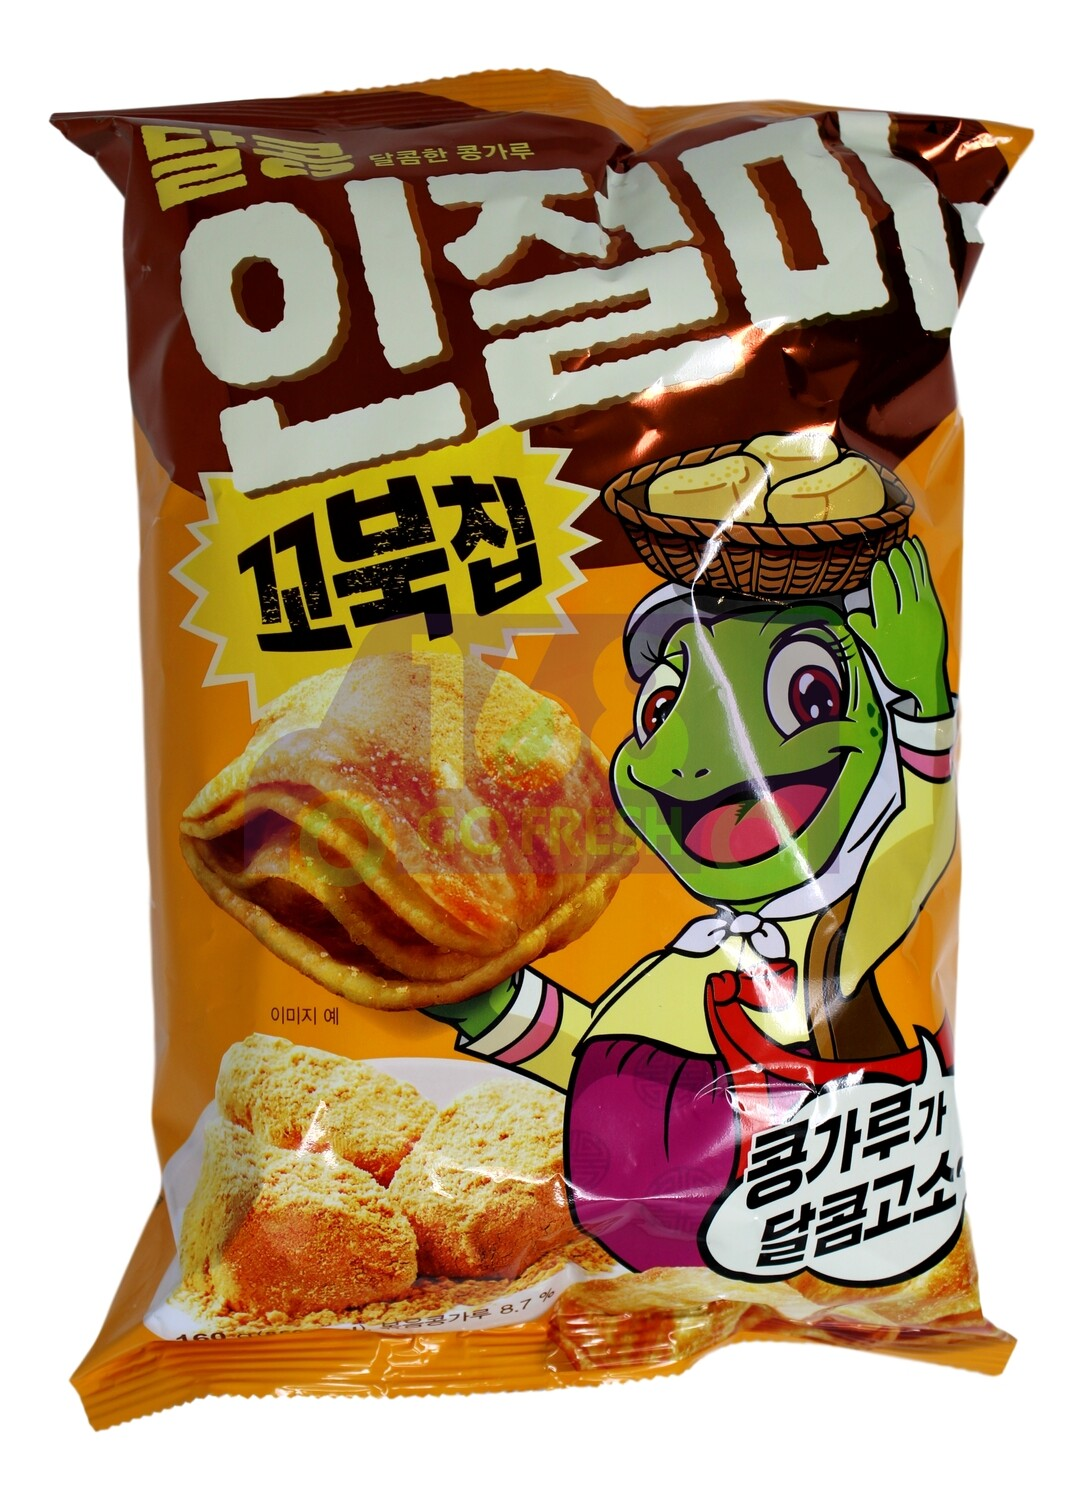 ORION TURTLE CHIPS SWEET BEAN FLAVOR 韩国 好丽友乌龟薯片甜豆风味(160G)